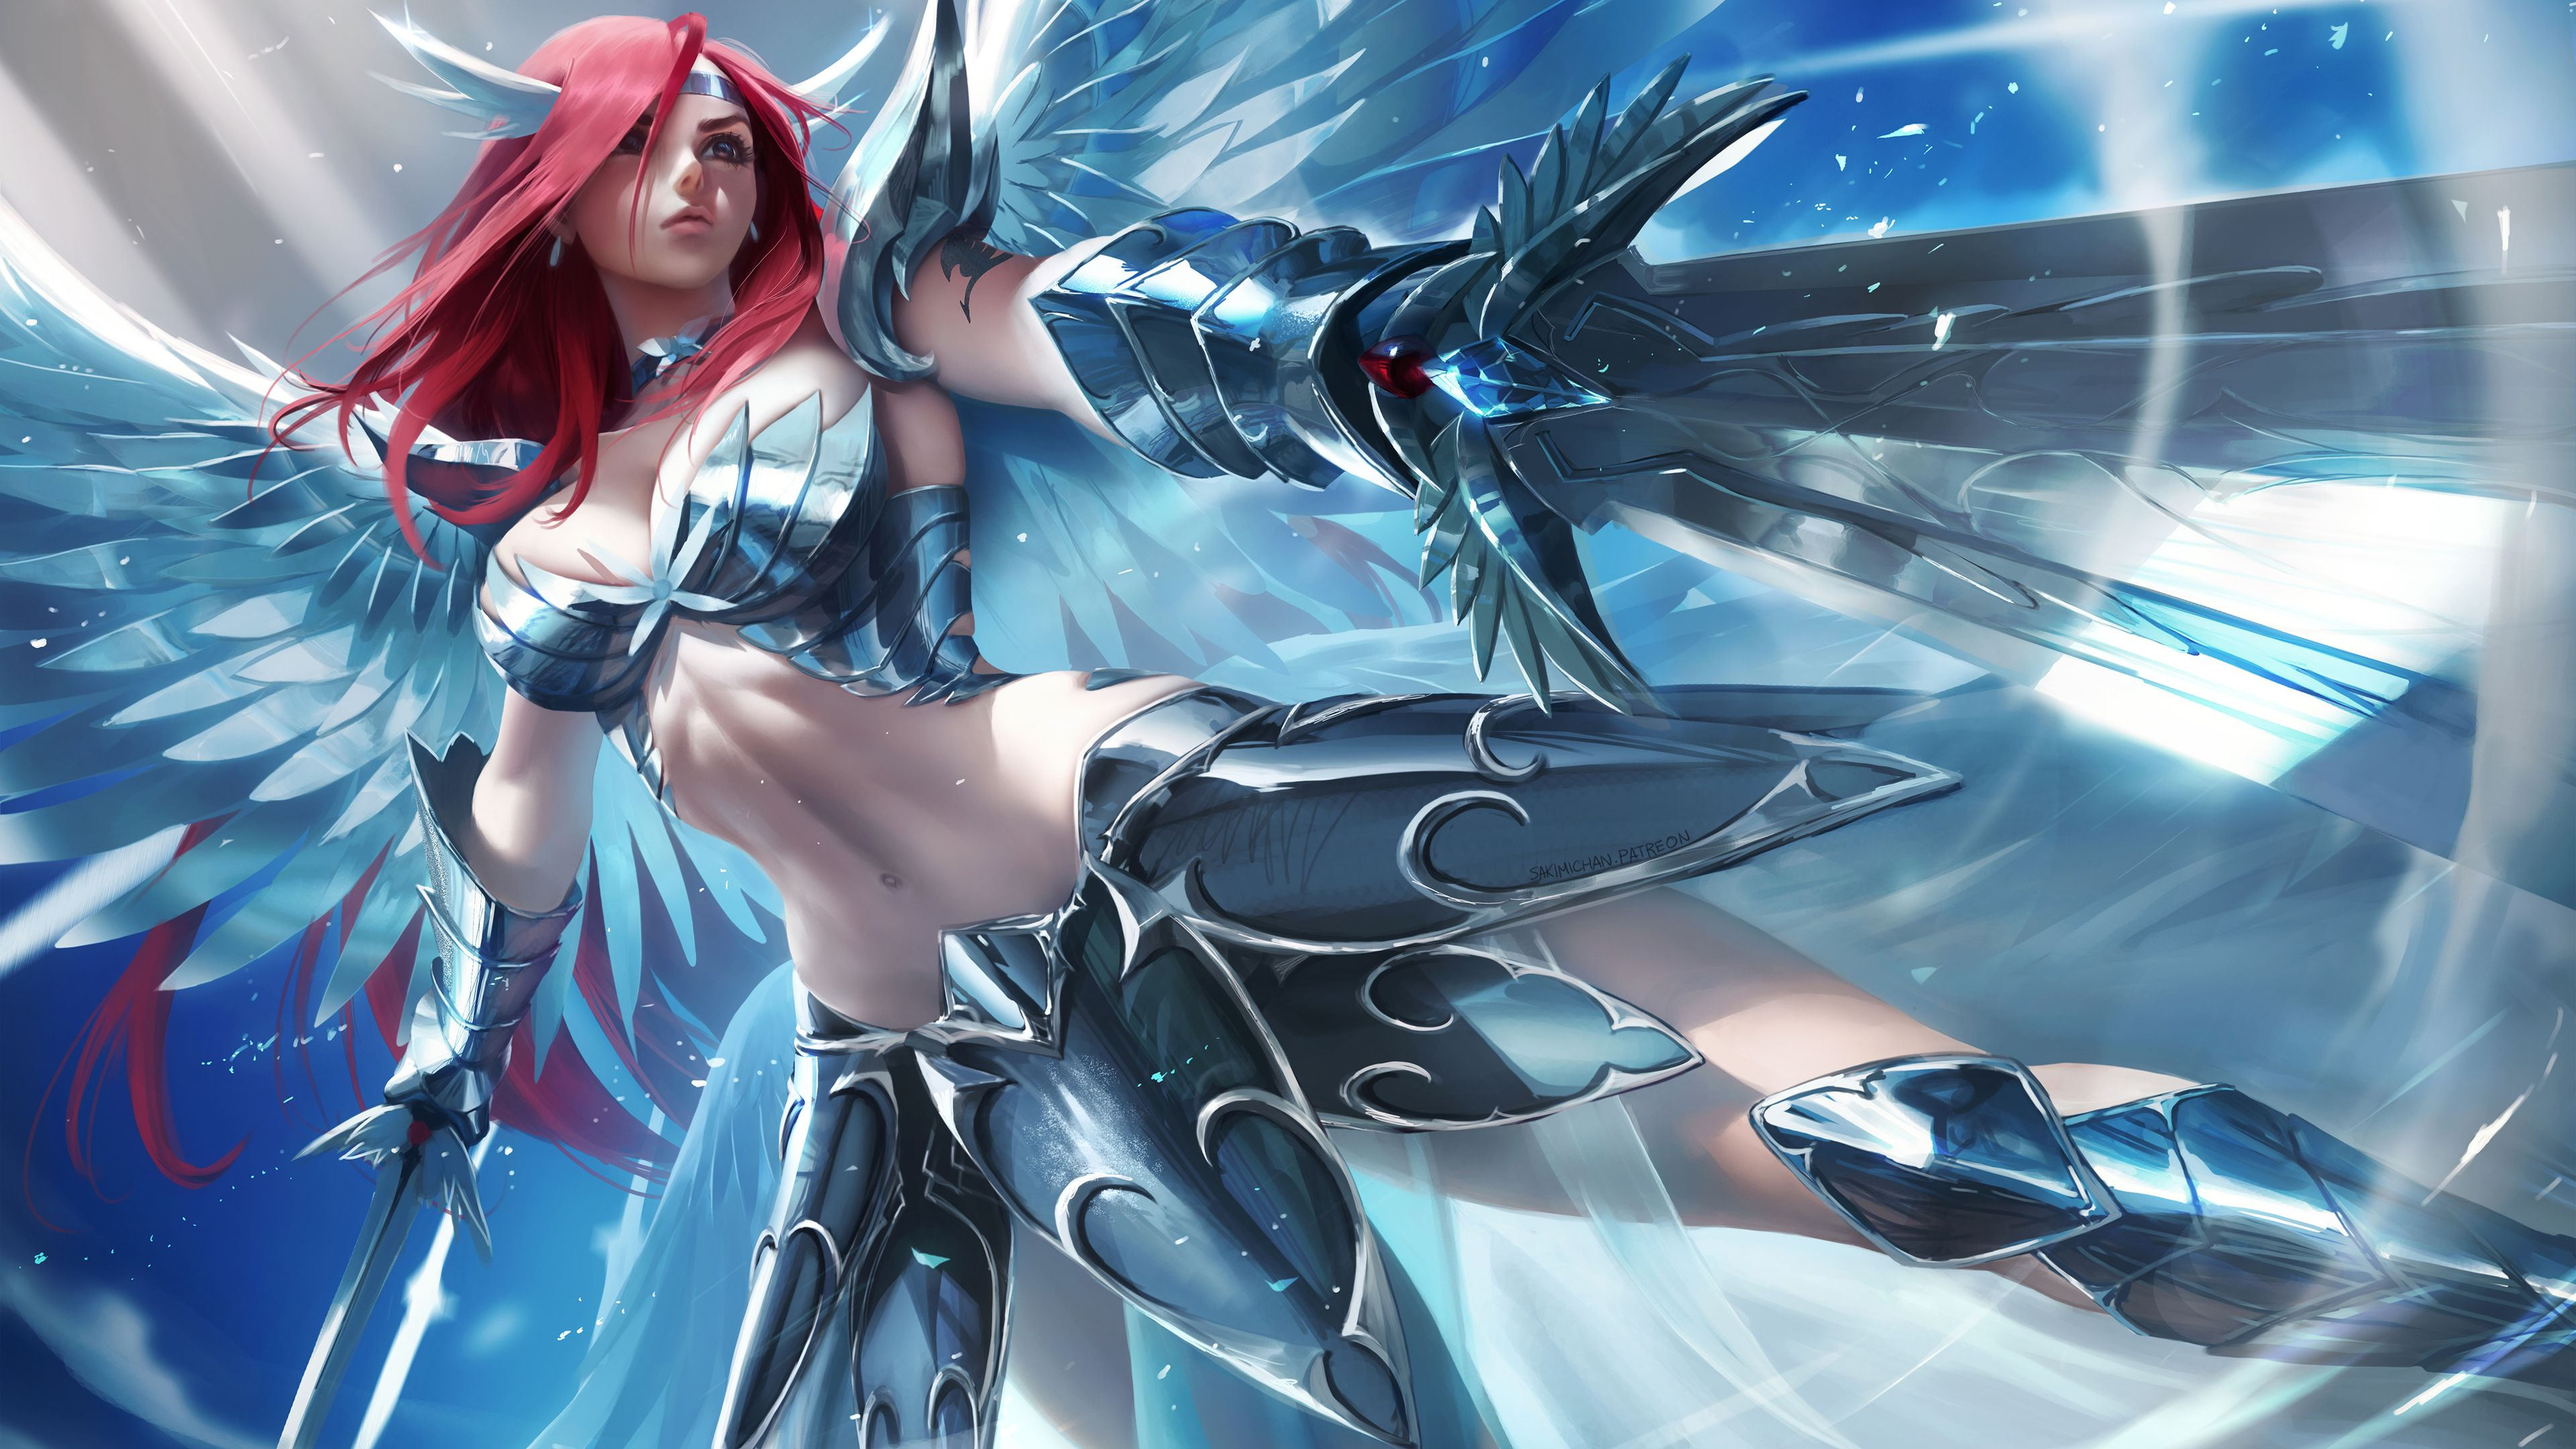 Erza Scarlet 4k Hd Wallpapers Digital Art Wallpapers Artwork Wallpapers Anime Wallpapers 4k Wallpapers In 2020 Fairy Tail Erza Scarlet Anime Fairy Fairy Tail Anime